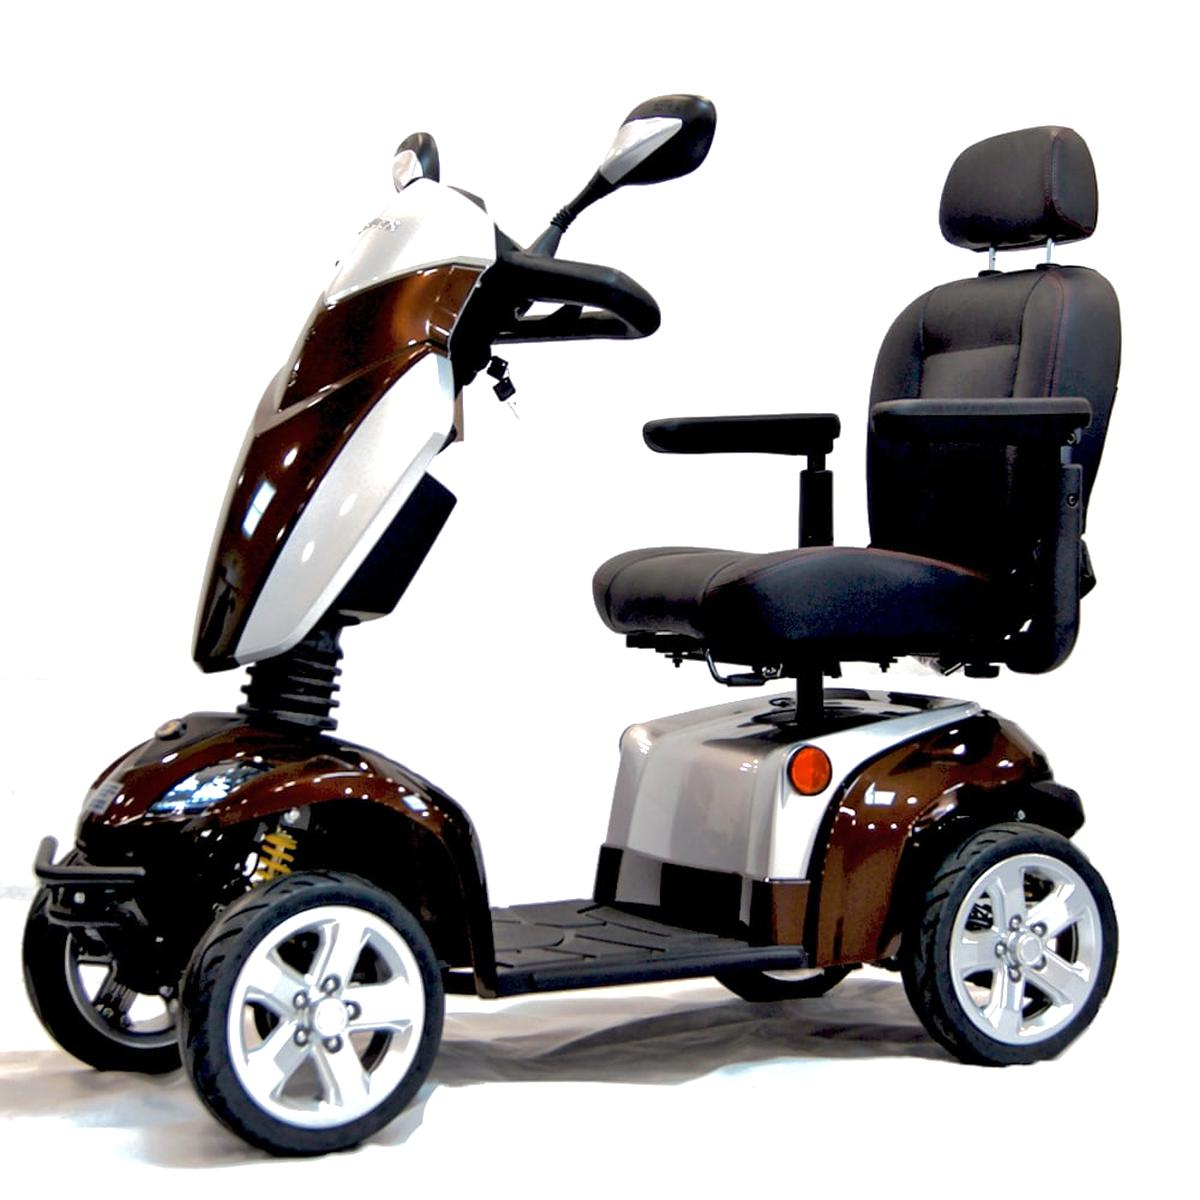 8mph mobility scooter for sale